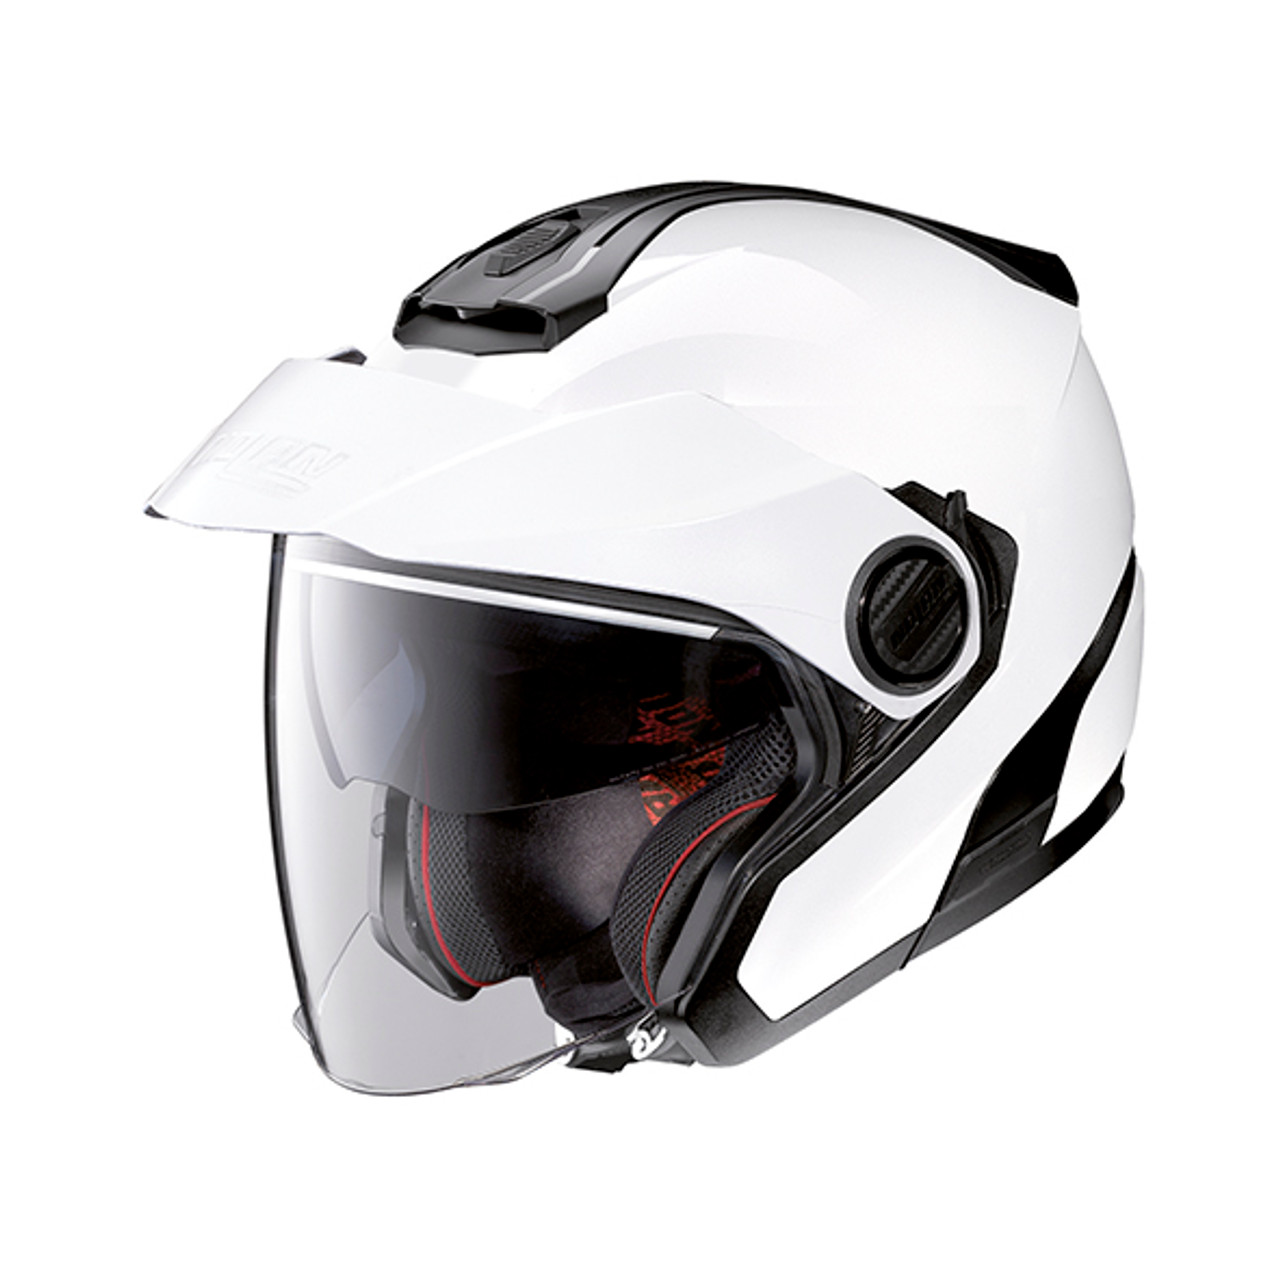 Nolan N40 Open Face Motorcycle Helmet Made In Italy